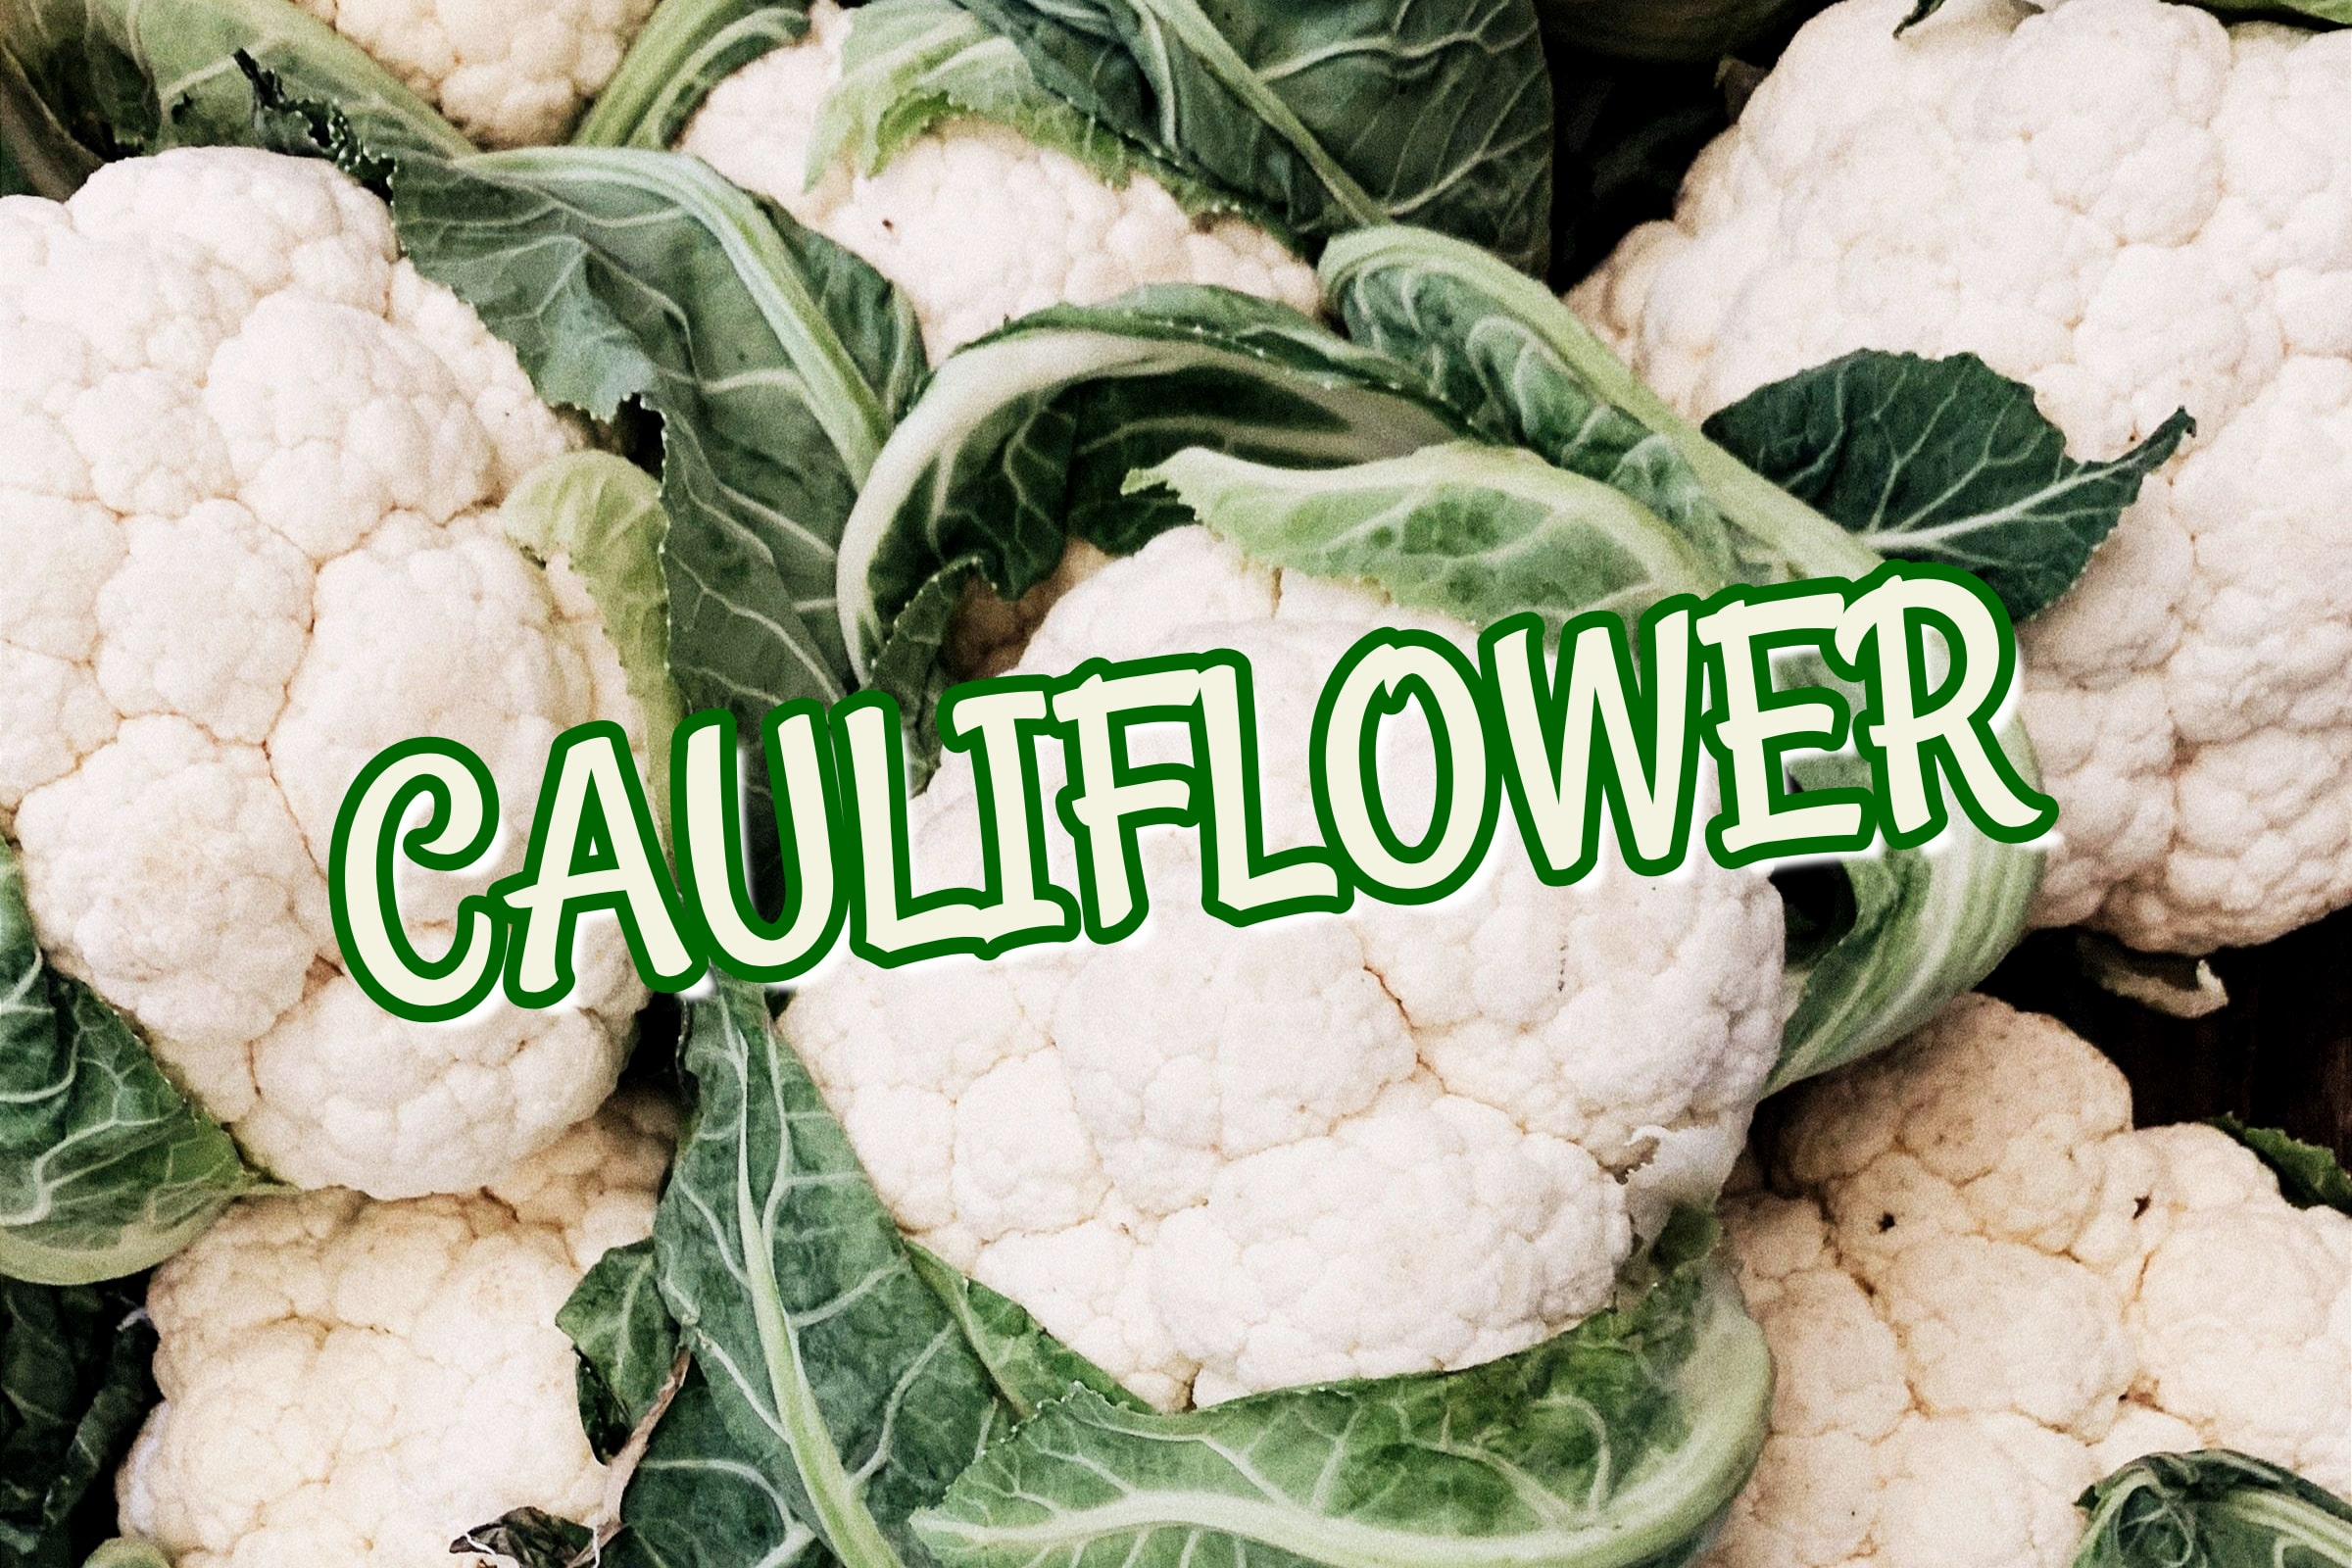 What Is The Cauliflower Plant?